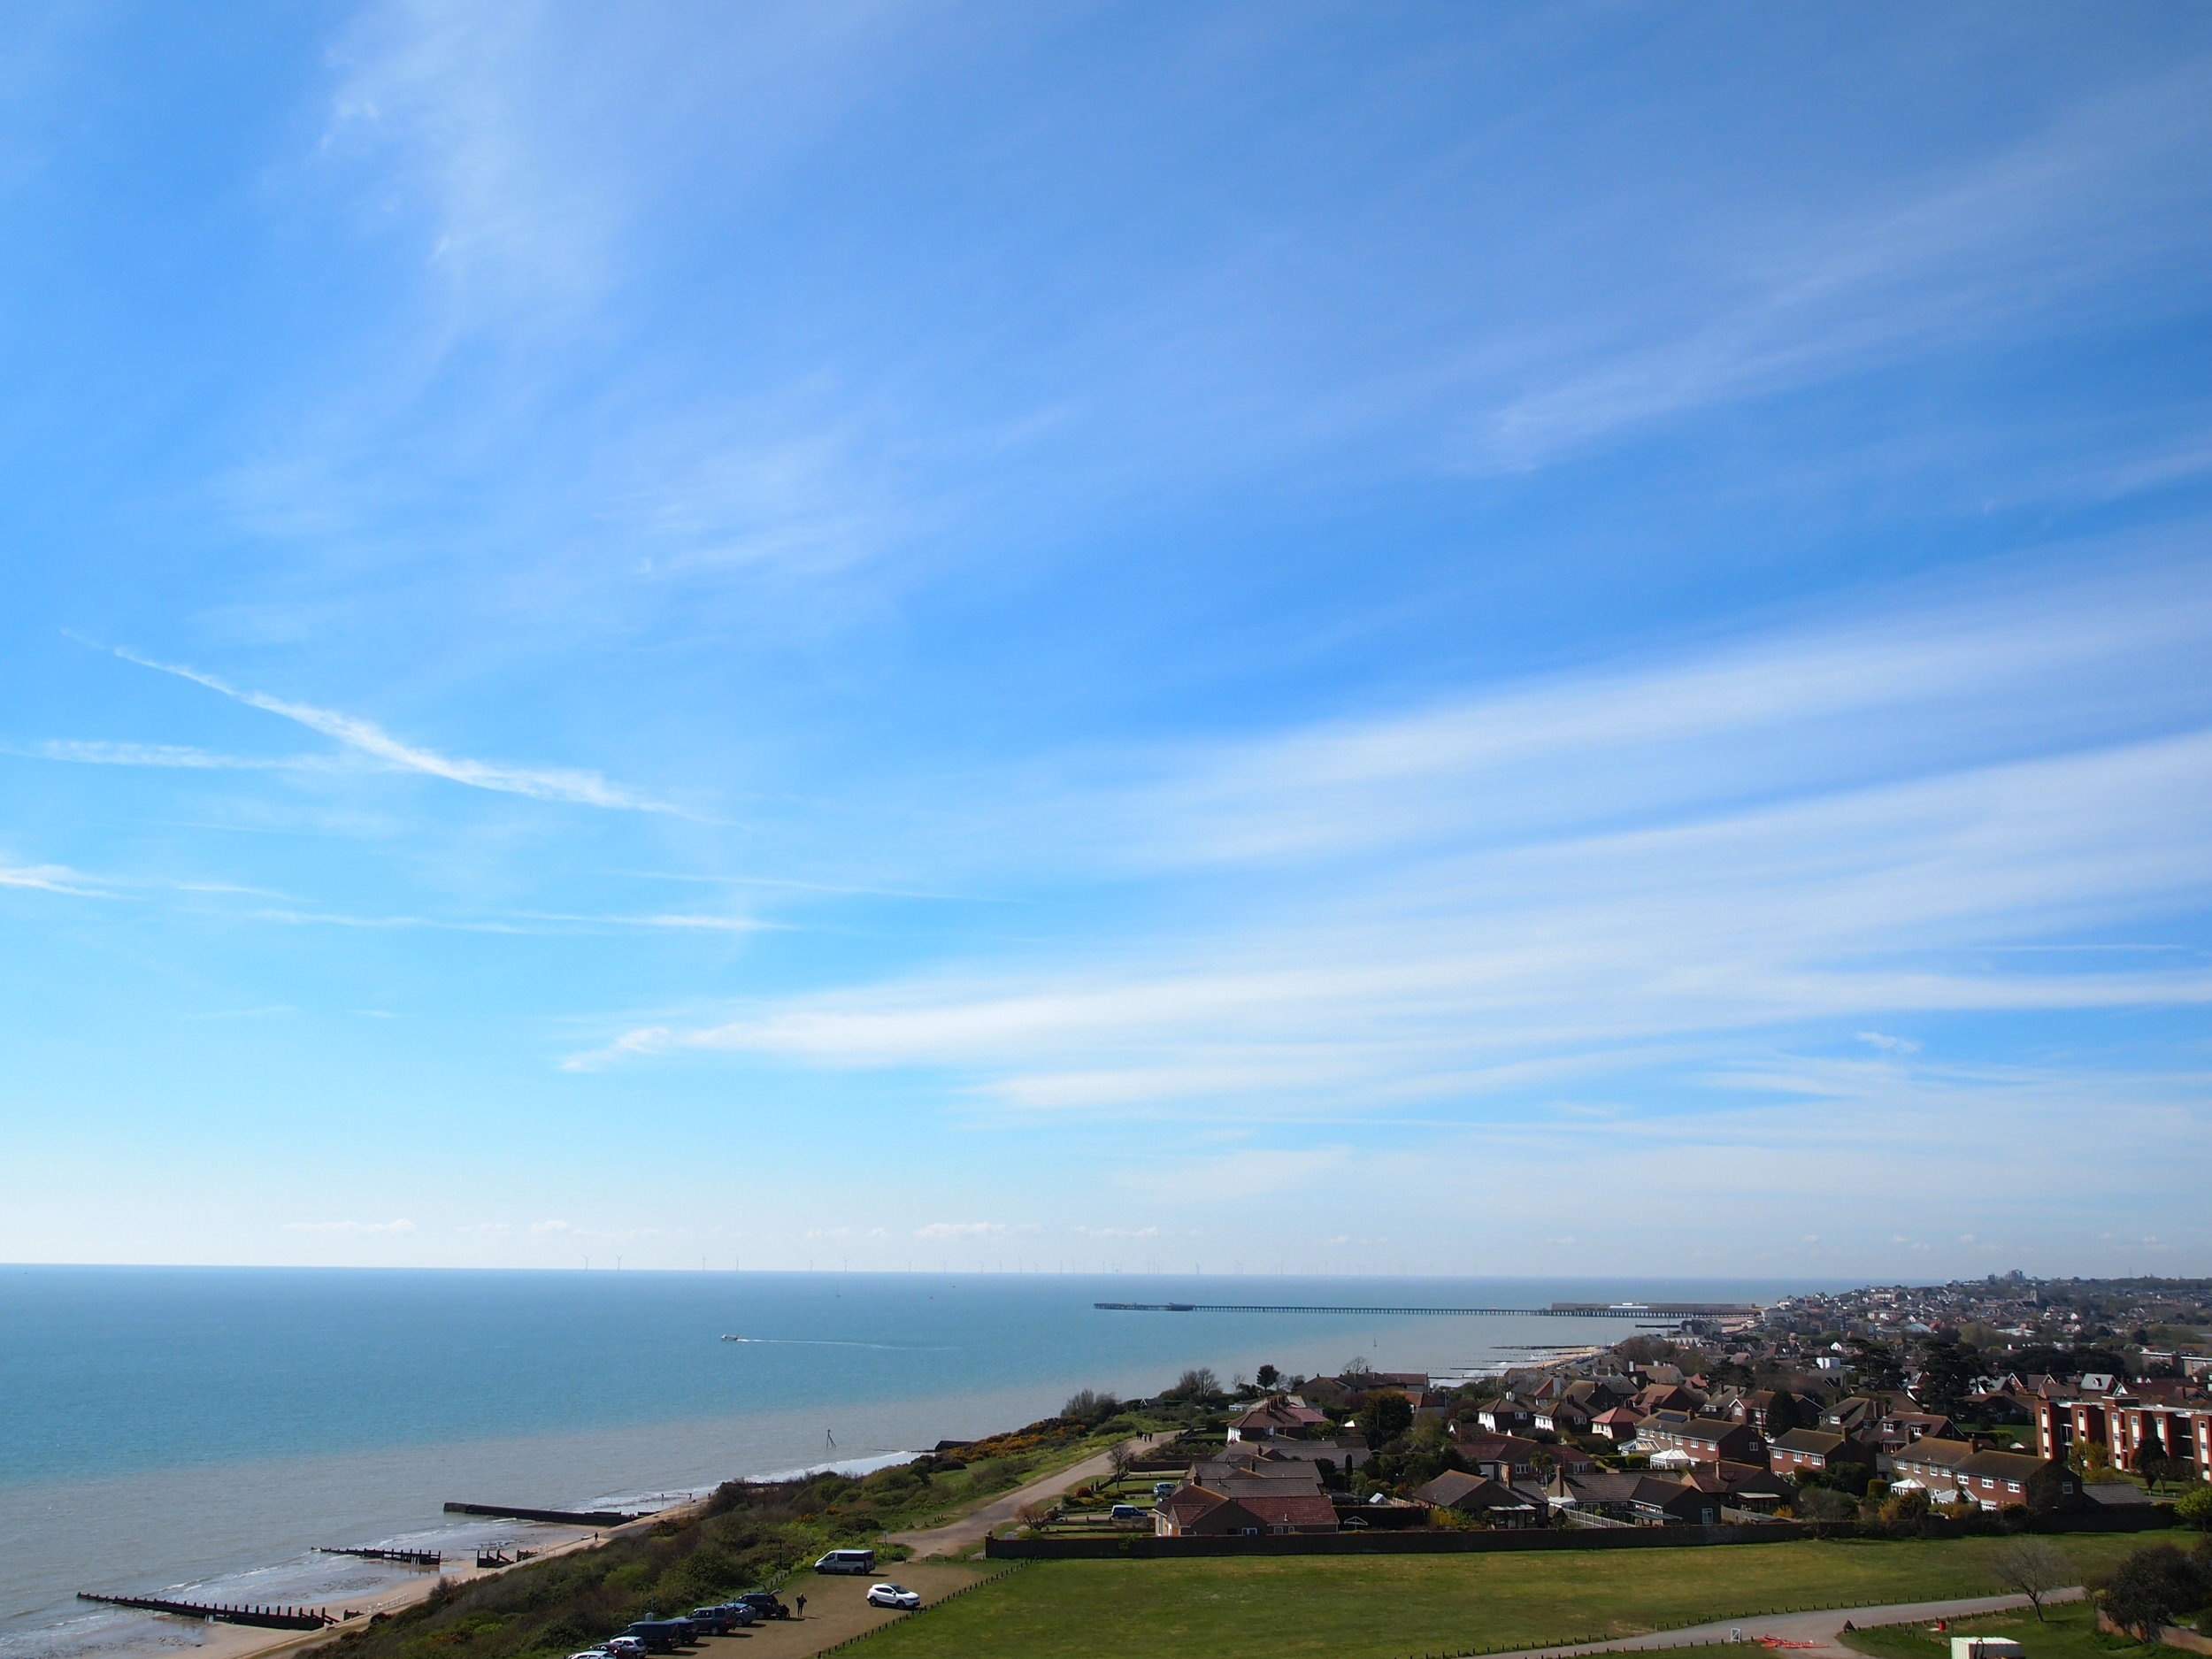 View from the Naze Tower